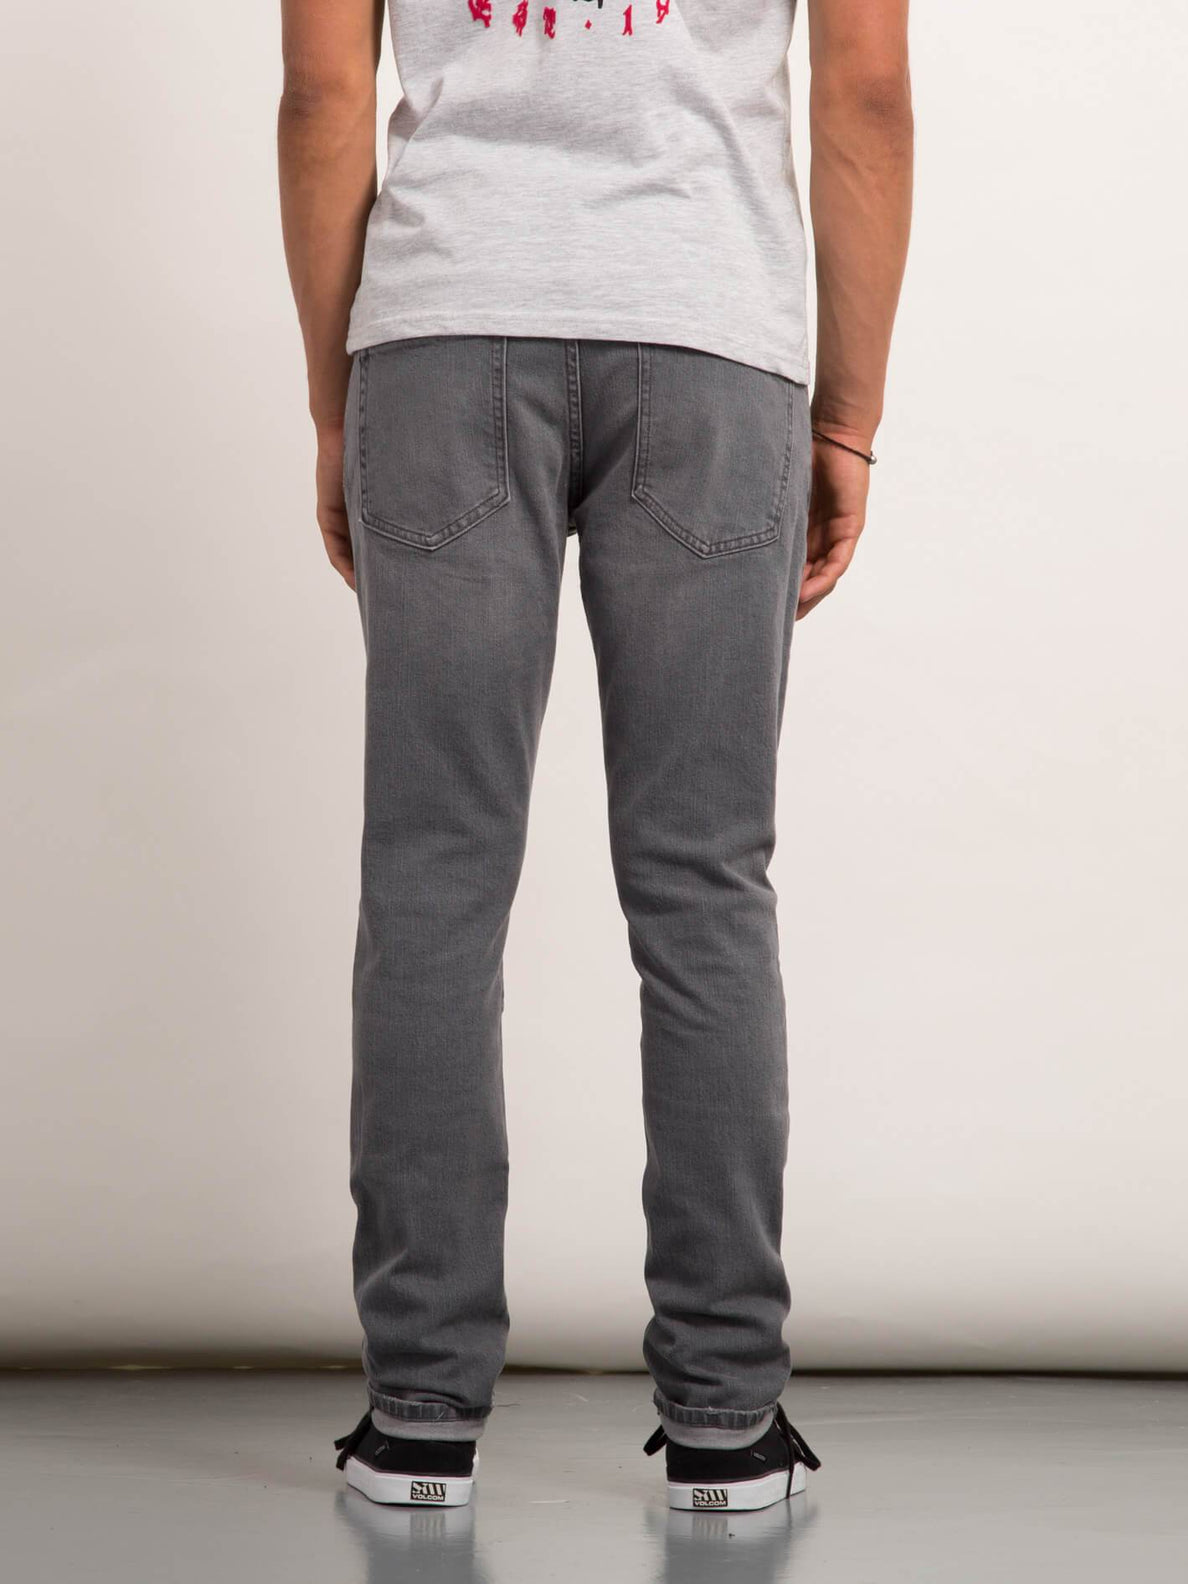 Vorta Tapered Jeans - Cement Grey